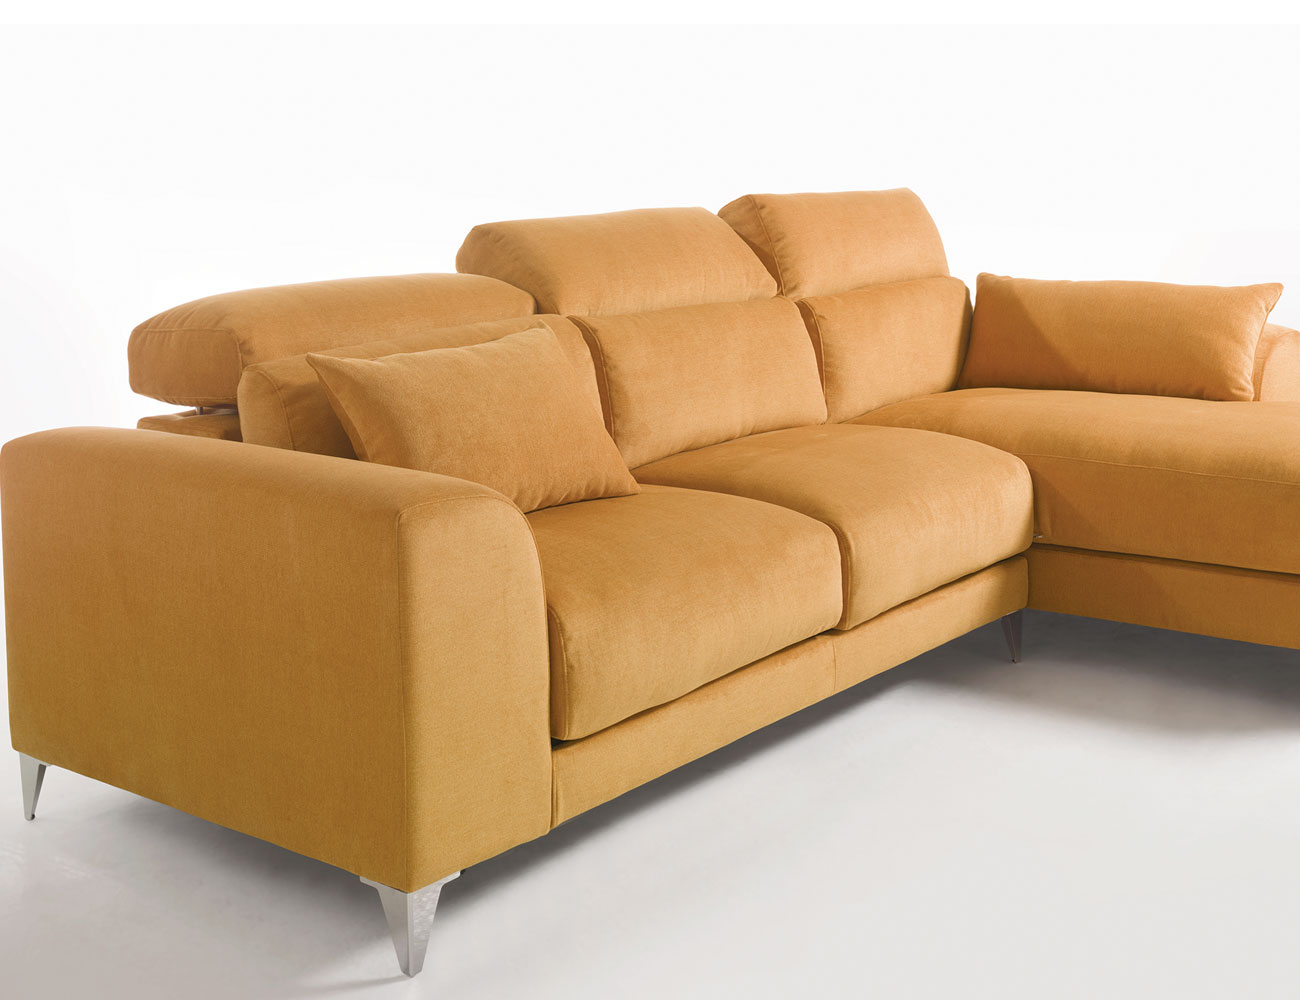 Sofa chaiselongue gran lujo decorativo patas altas amarillo 237